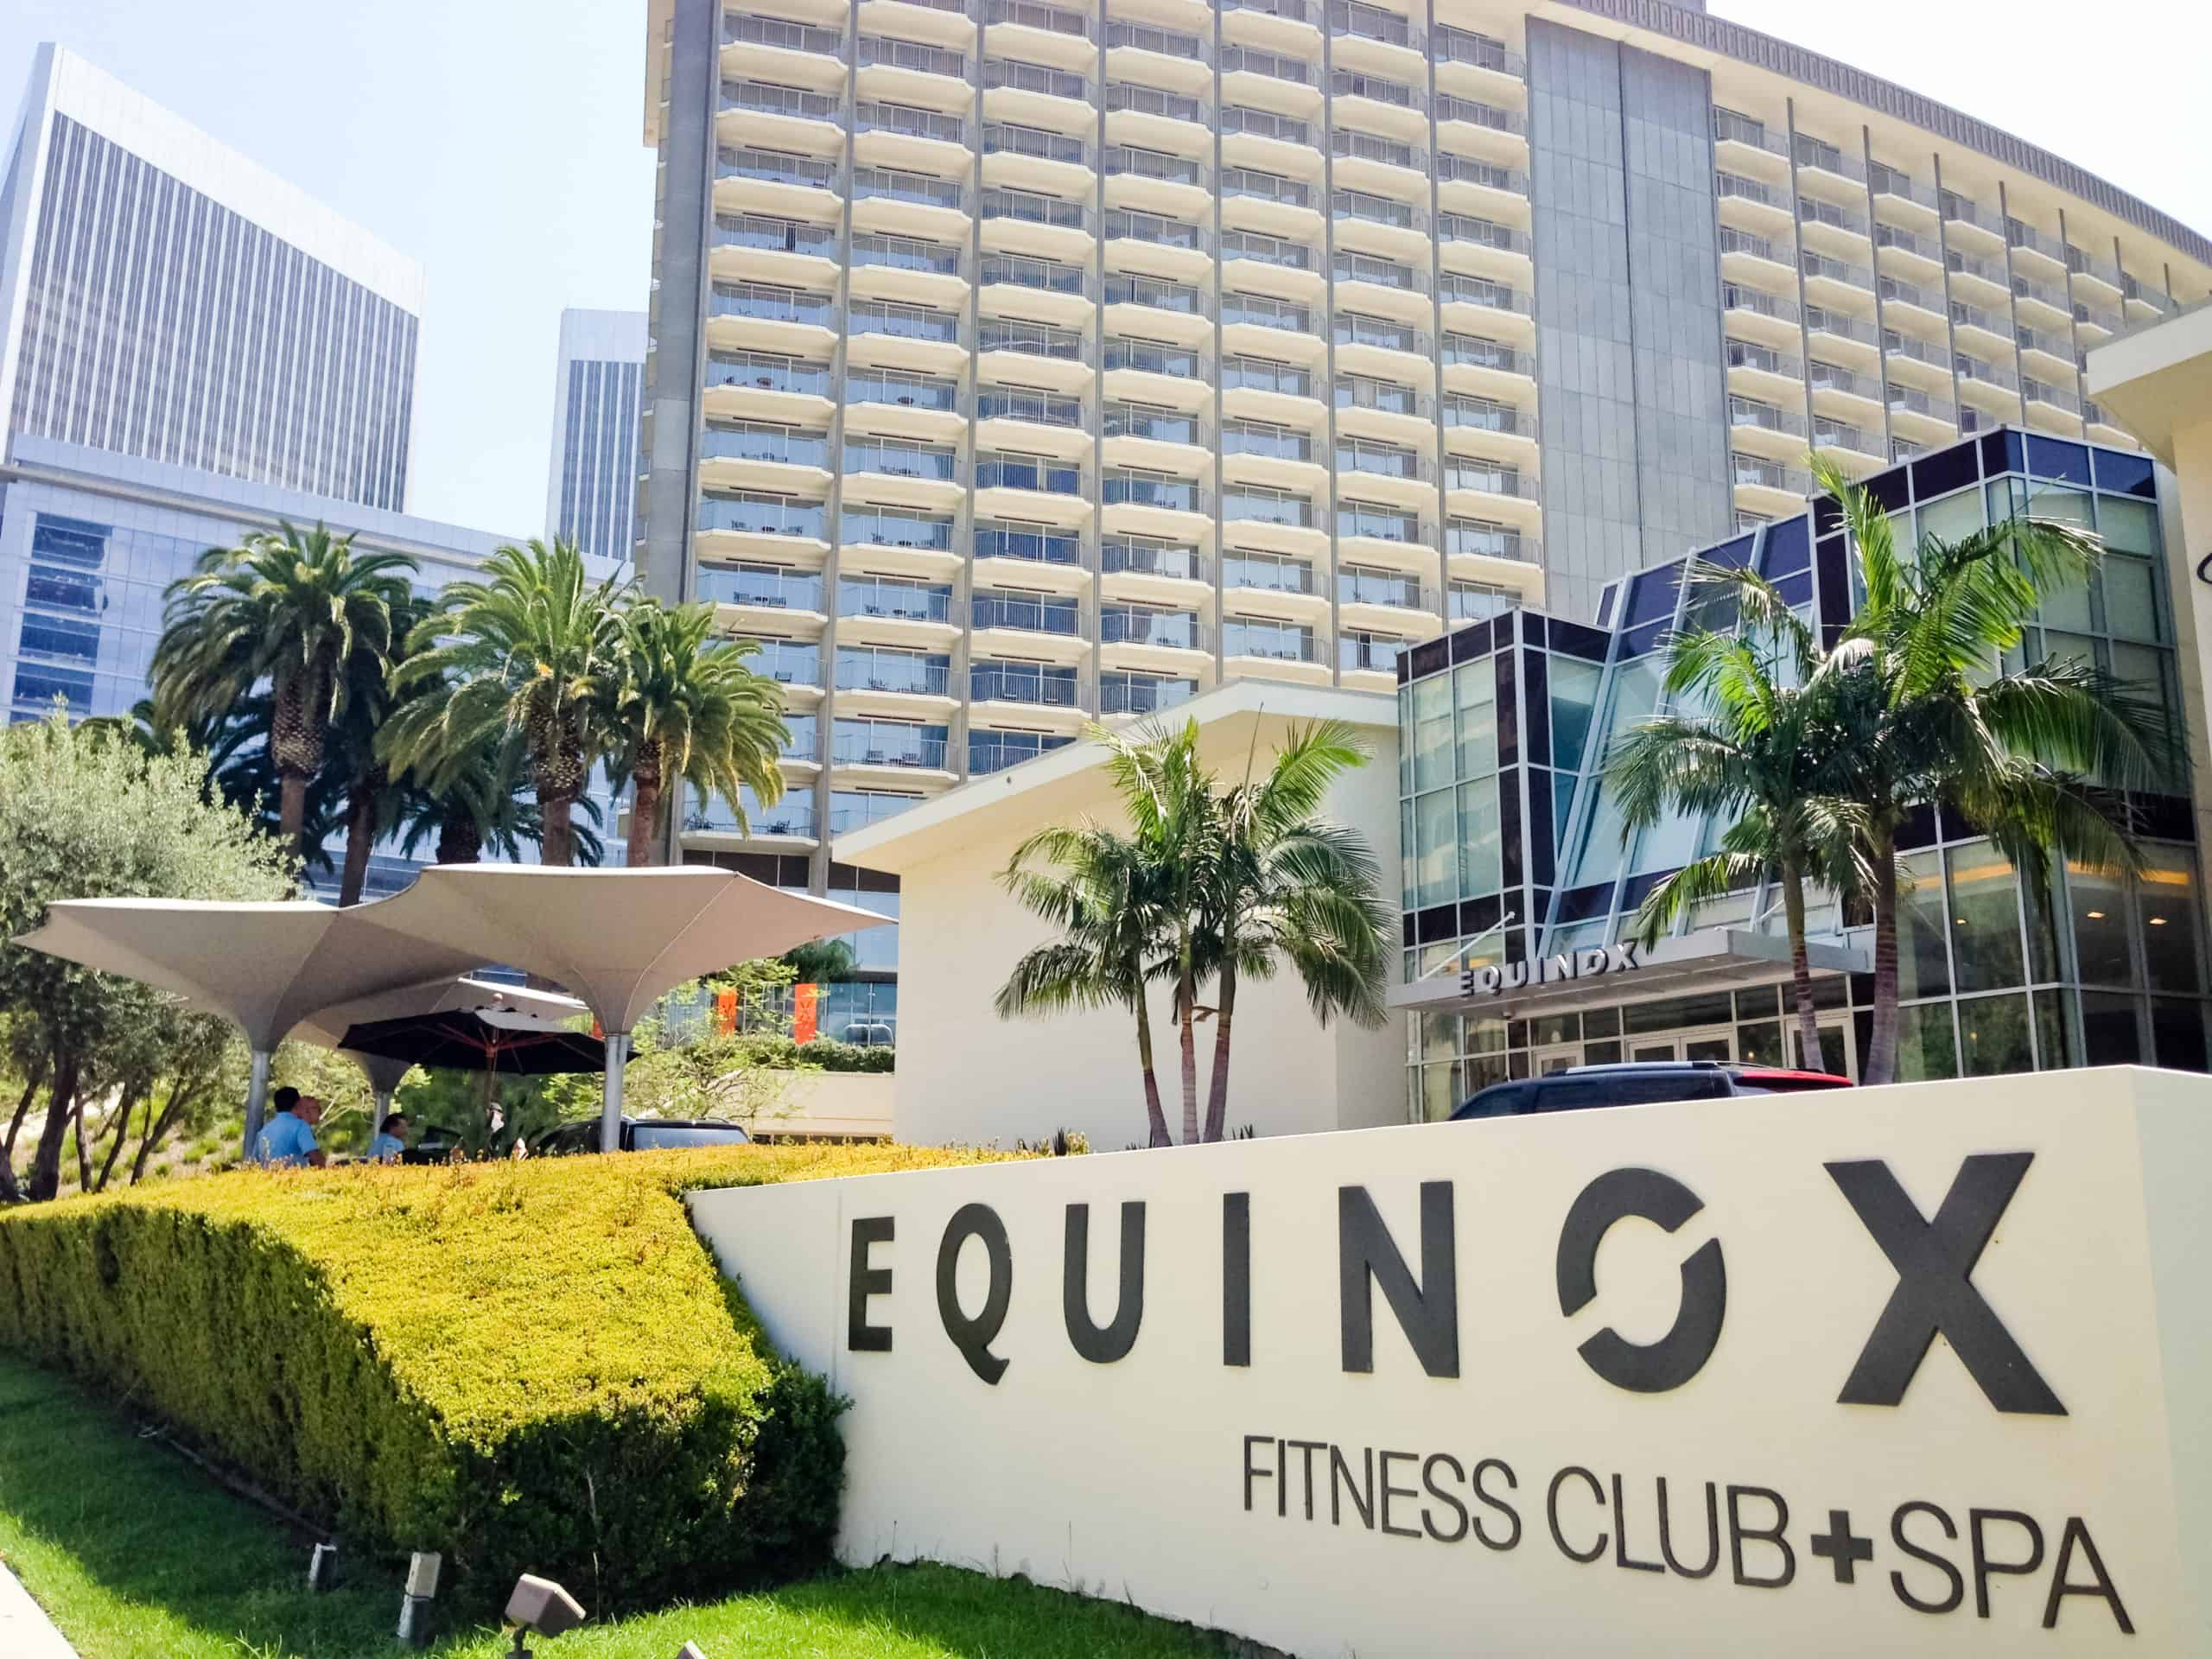 Outside image of sign showing equinox fitness club